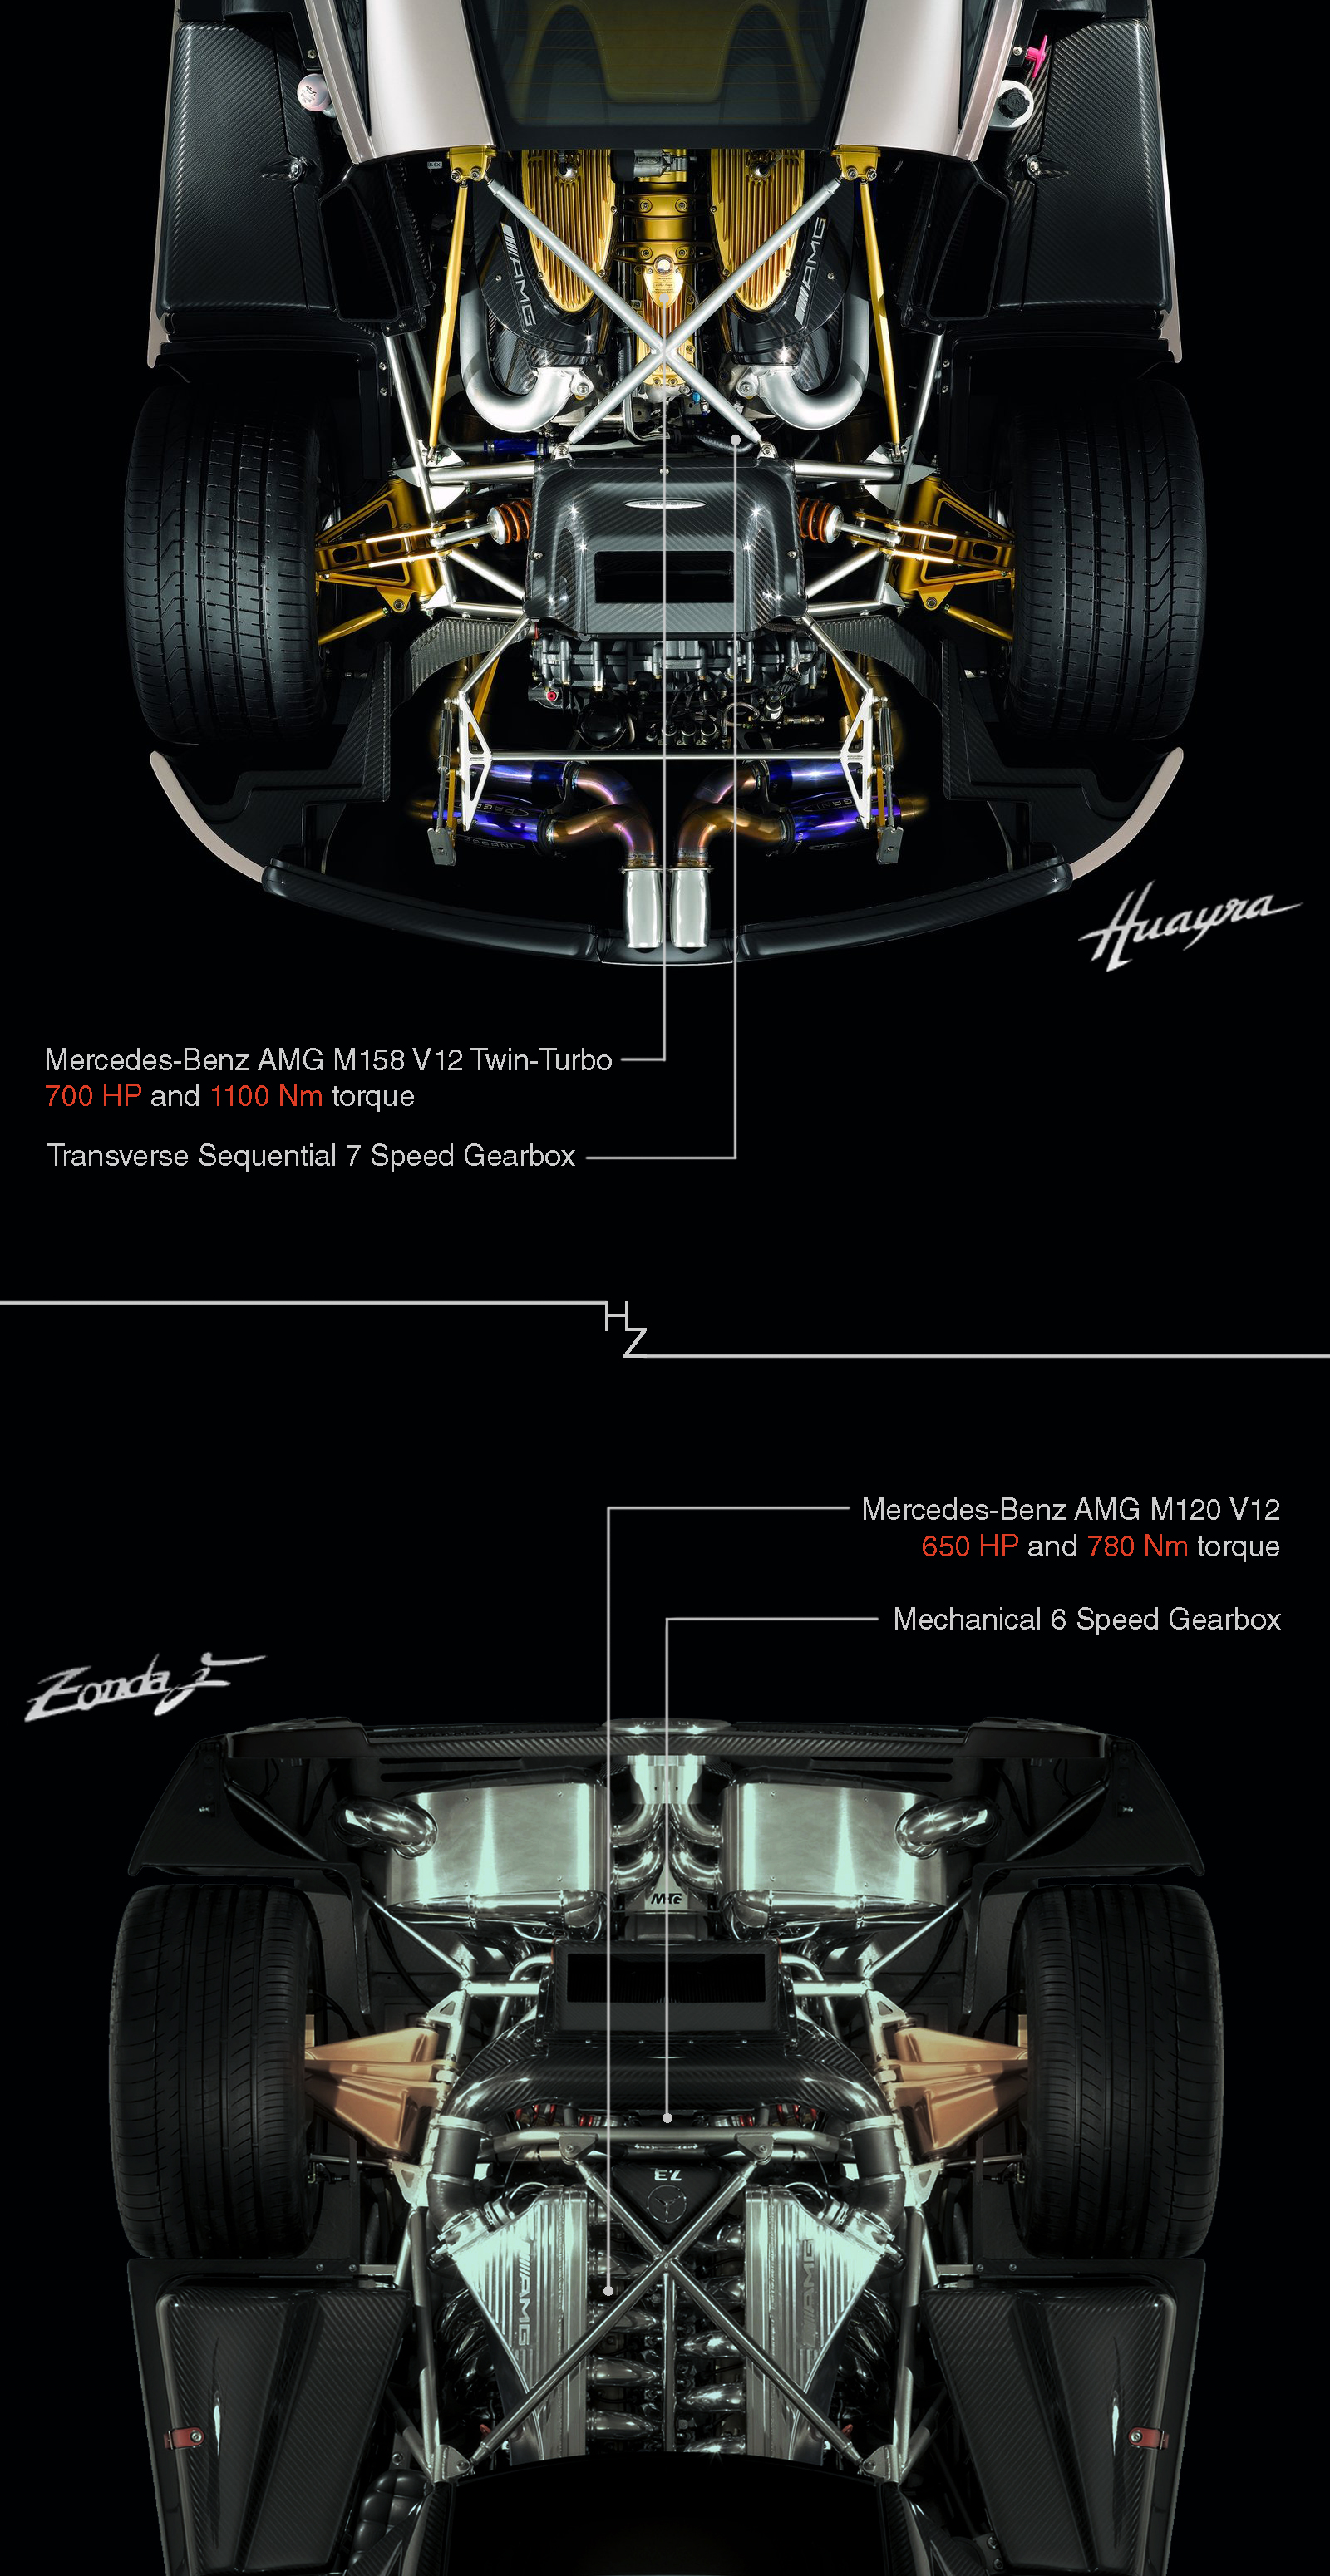 Supercar, Pagani, Huayra, Zonda, Legacy, Comparison, engine, gearbox